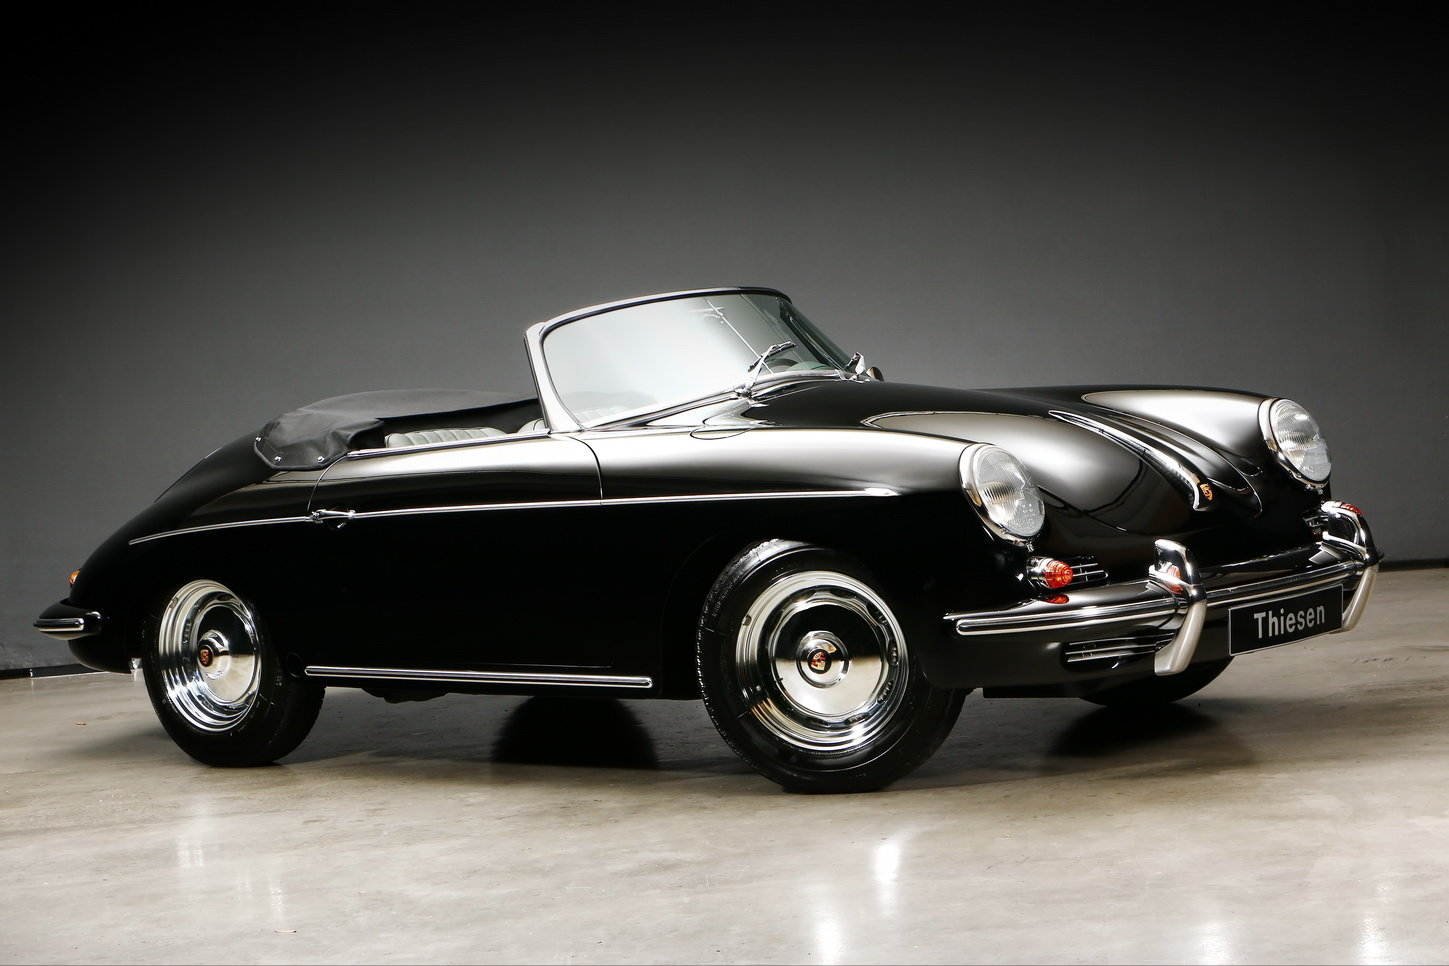 1961 Porsche 356 B T6 Roadster For Sale (picture 1 of 6)